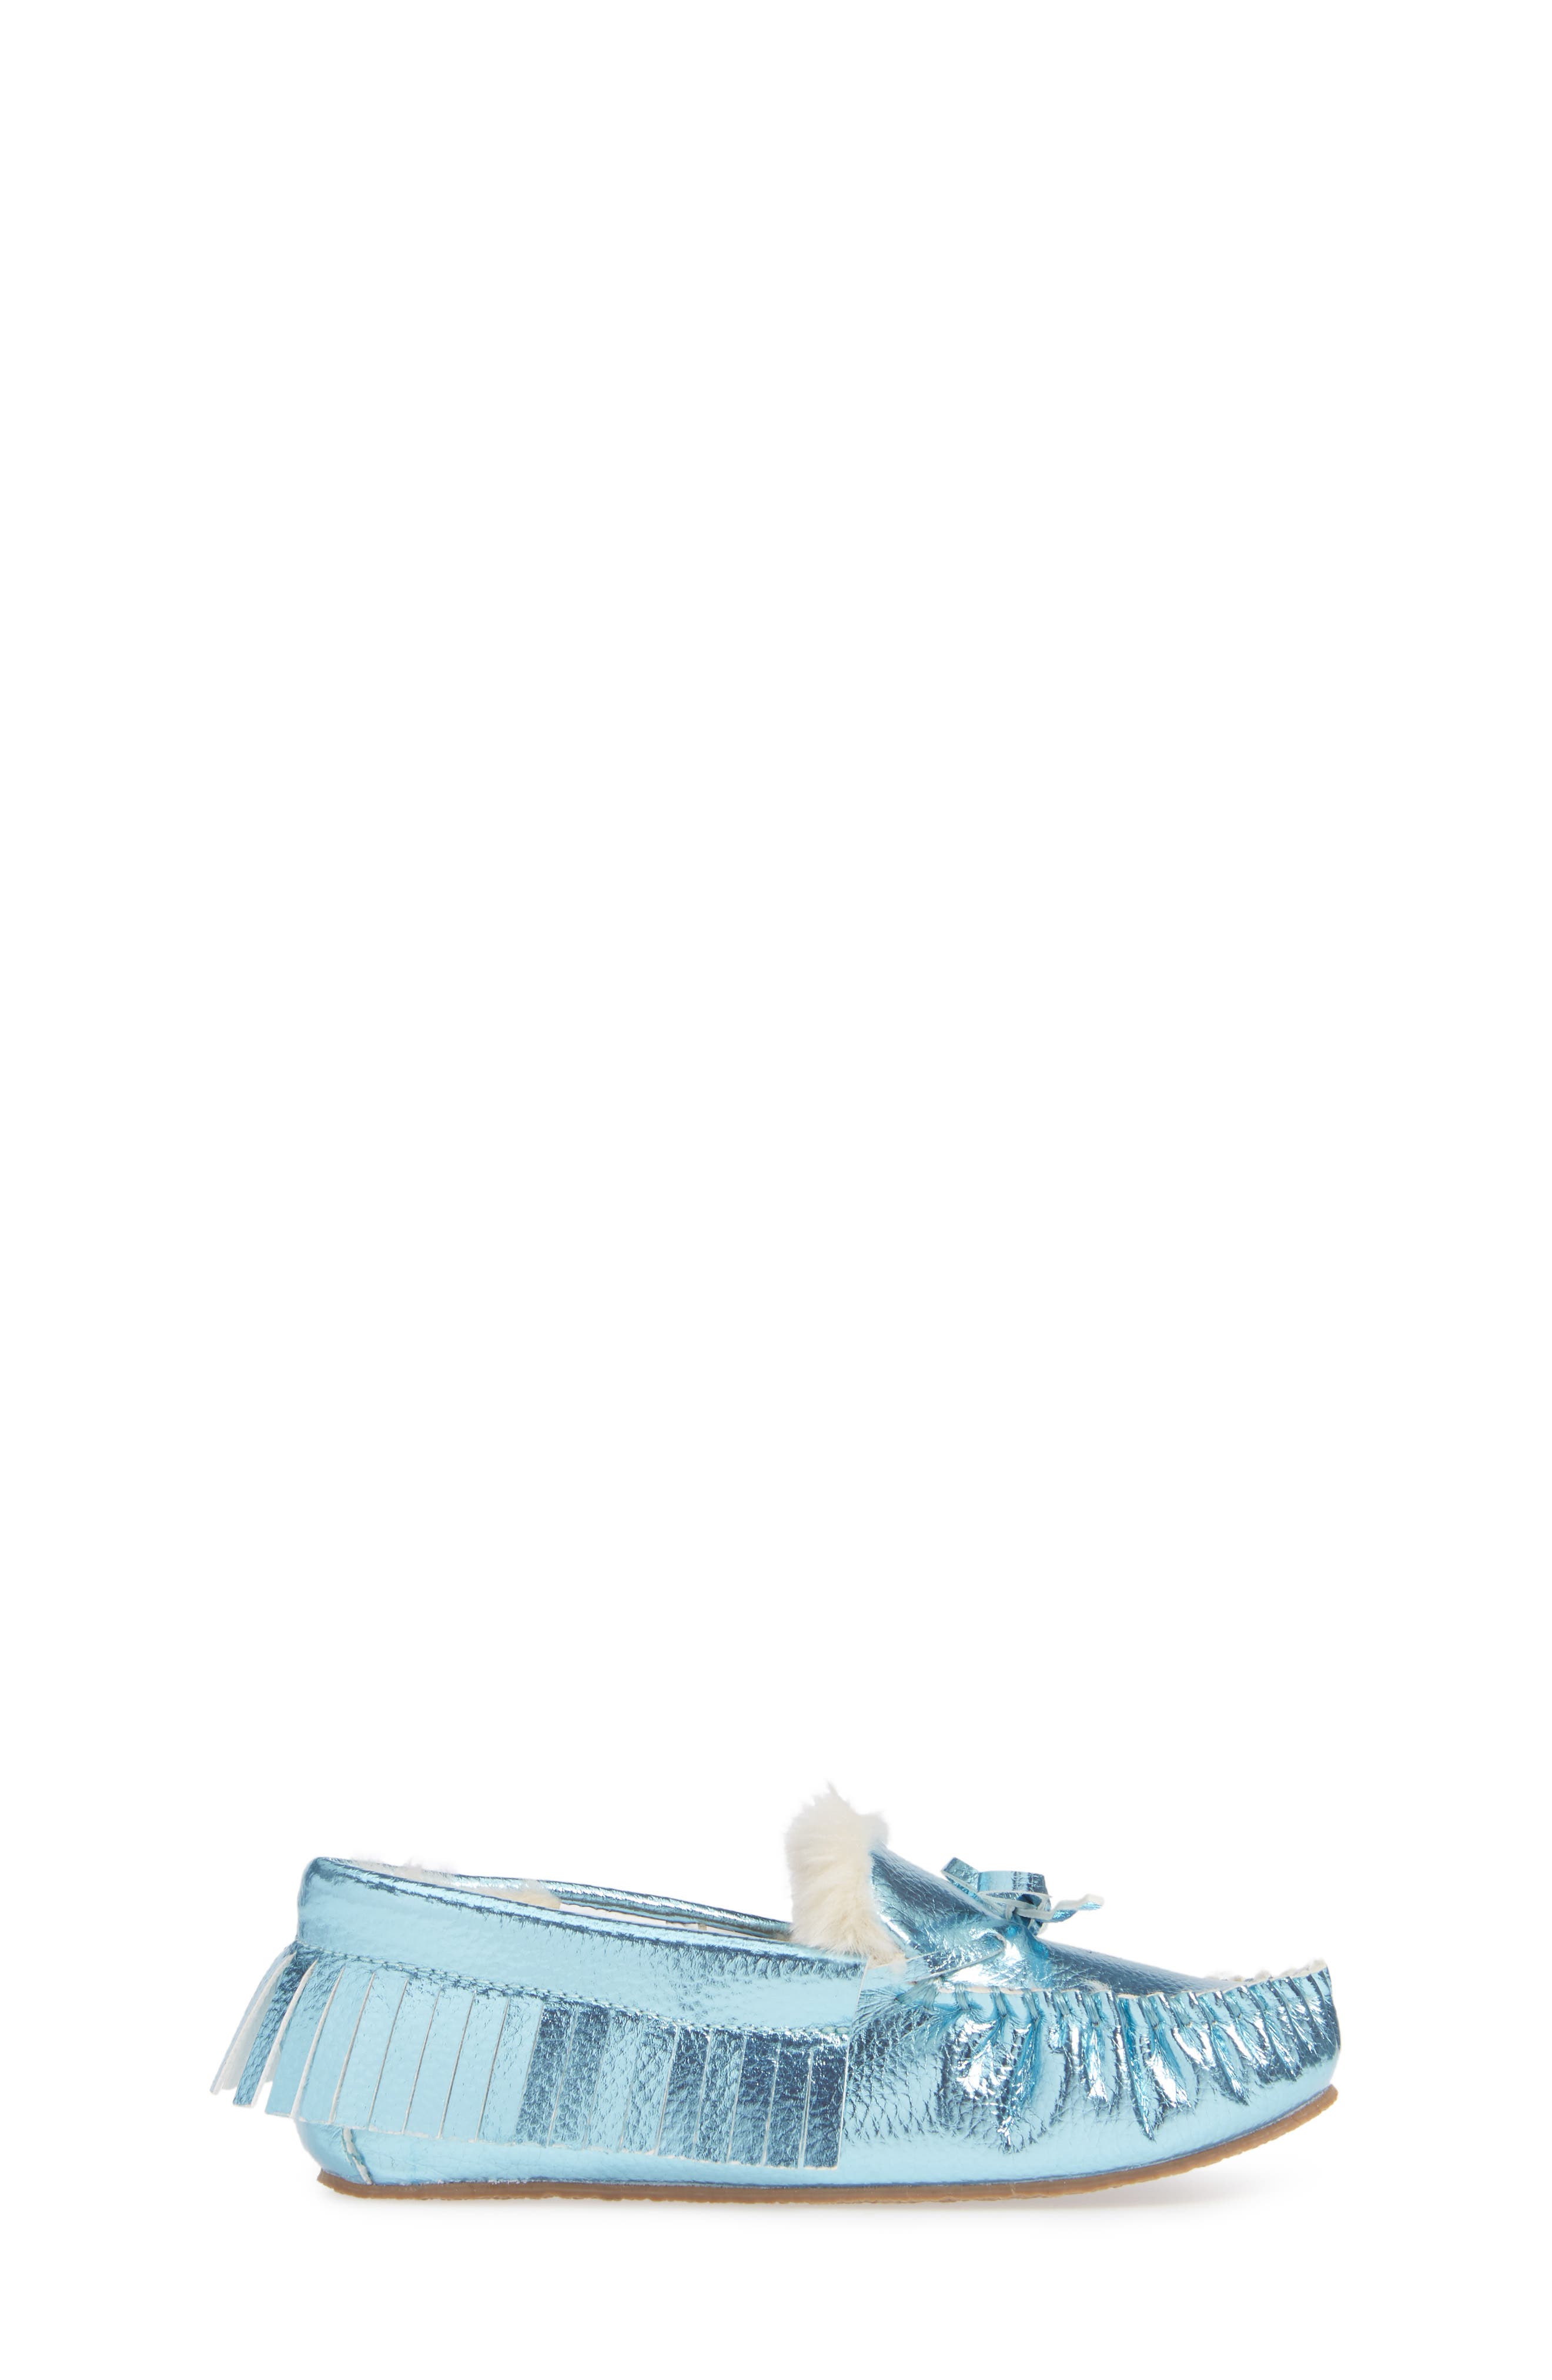 CREWCUTS BY J.CREW,                             Metallic Moccasin,                             Alternate thumbnail 3, color,                             FADED SKY